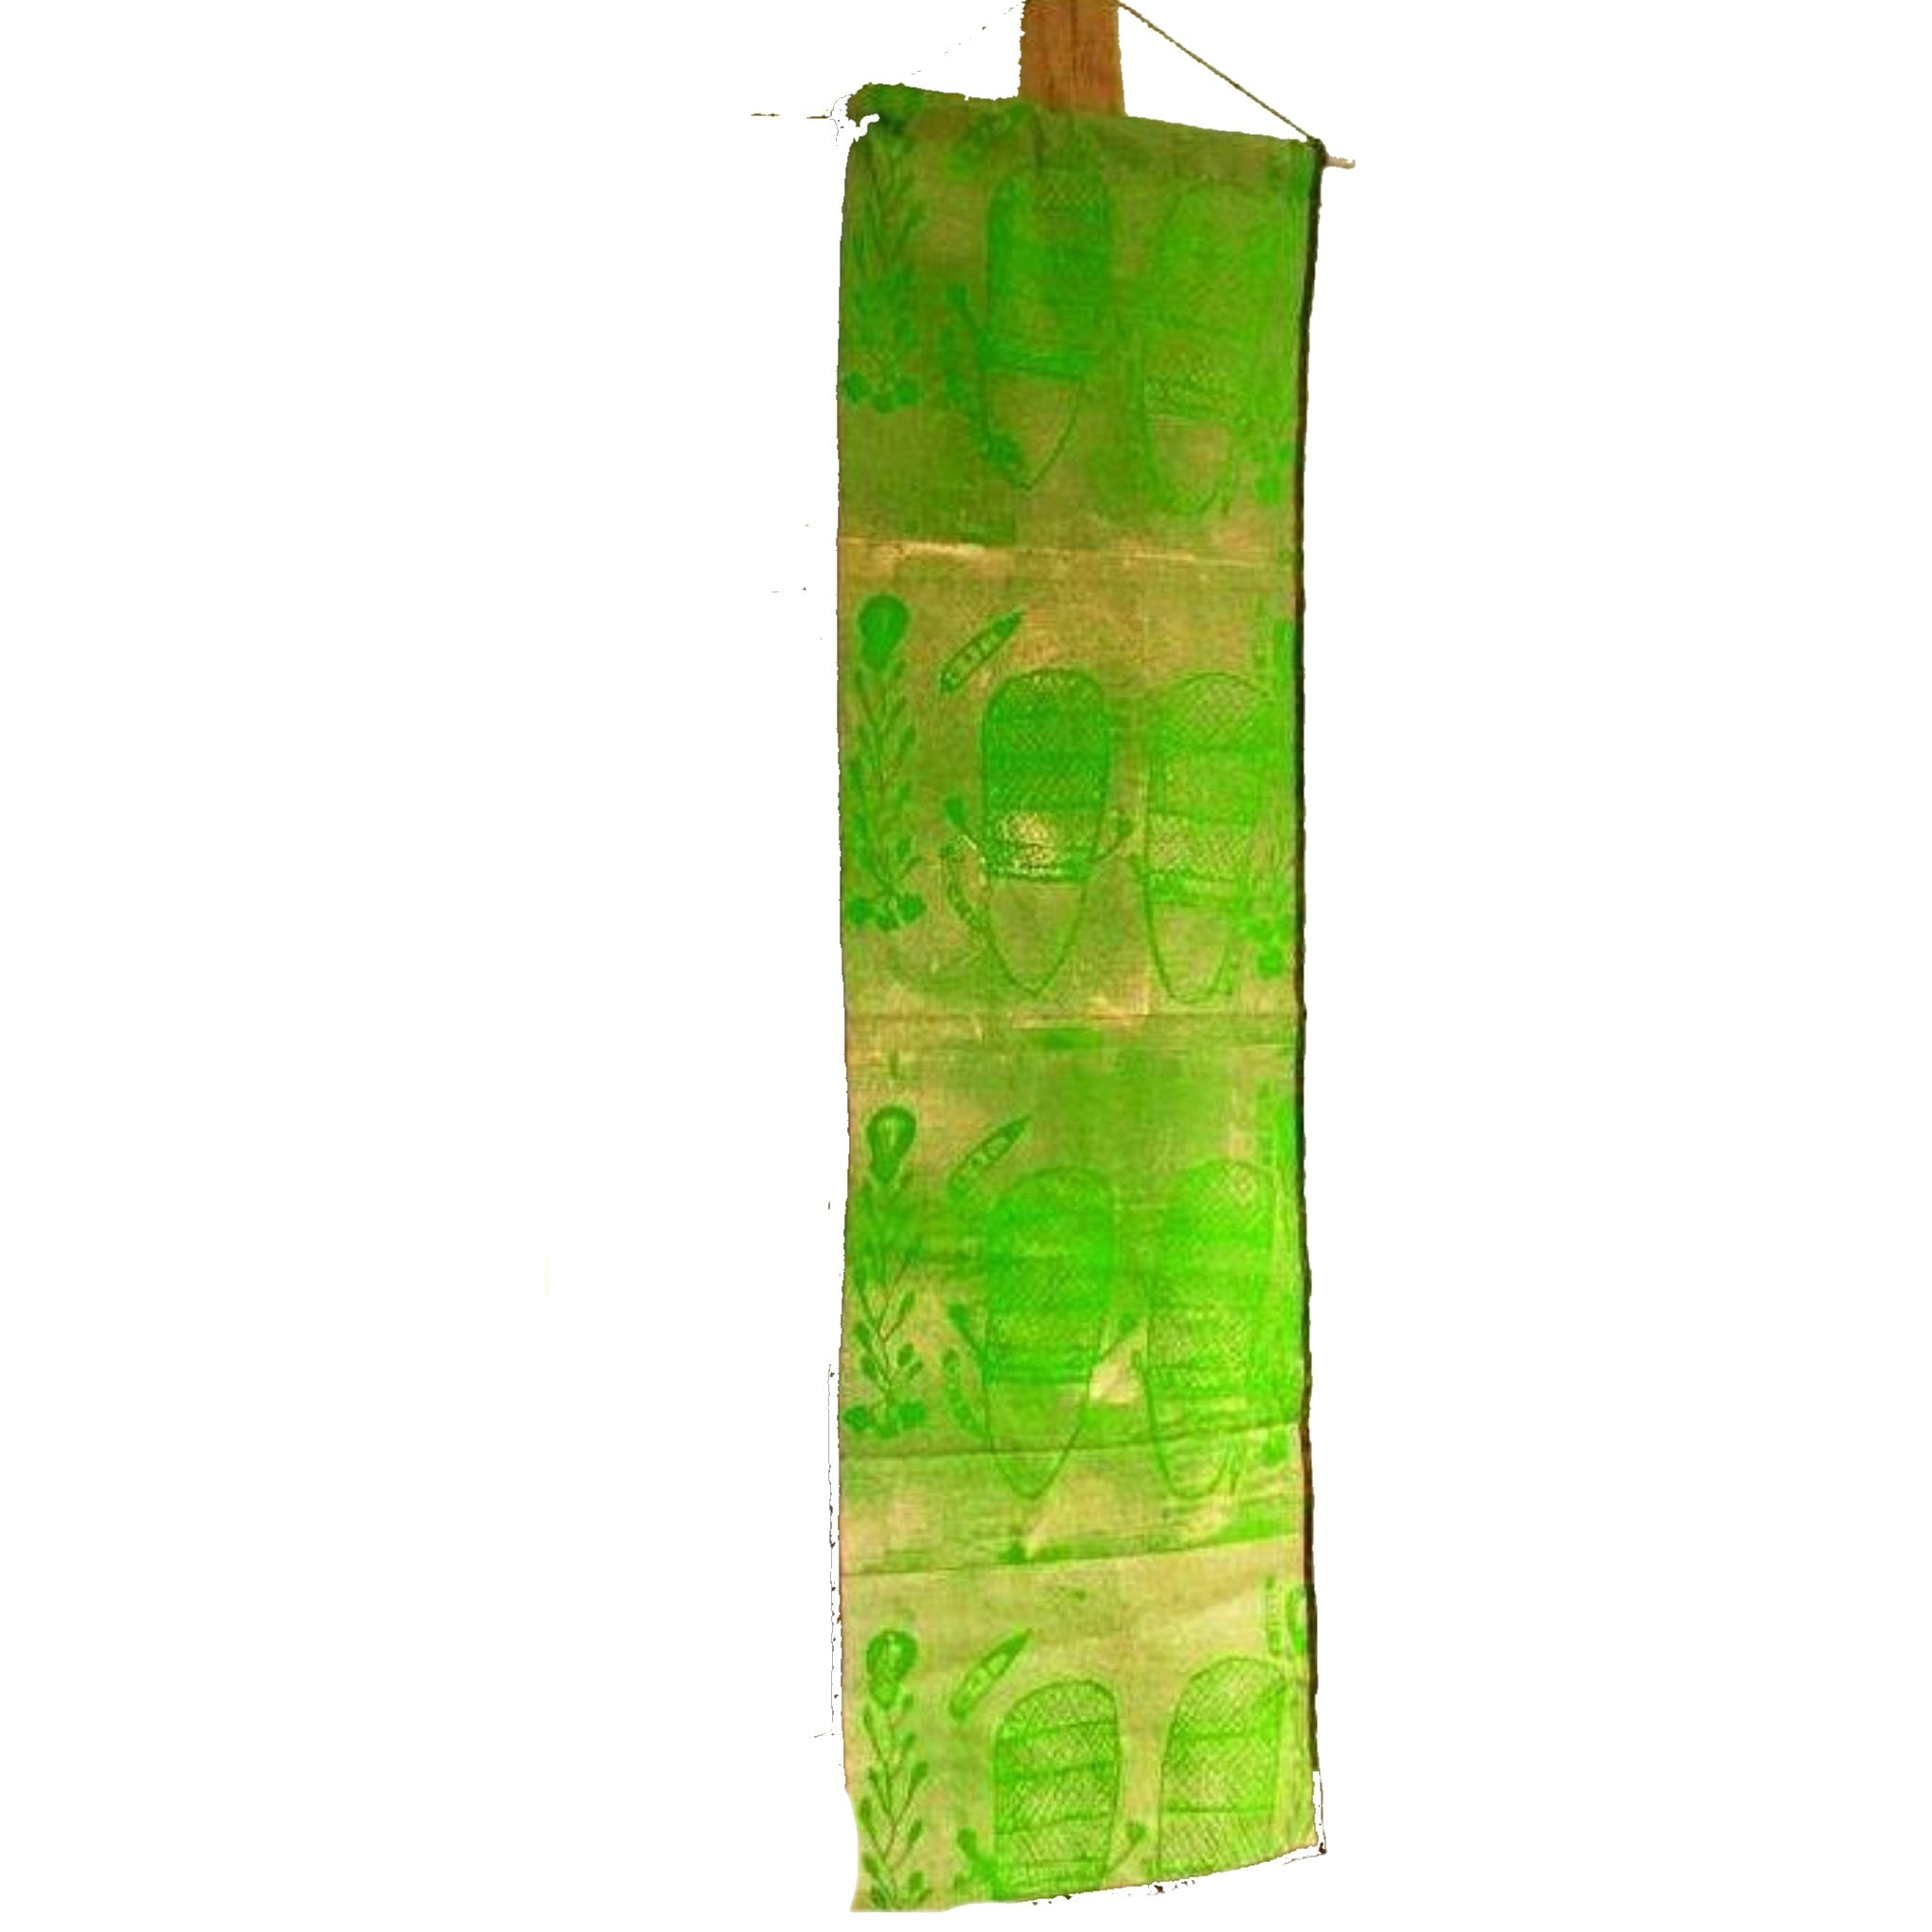 MK Eco by Starwin Bawaninga Aboriginal Corporation Babbarra design wall hanging - Green